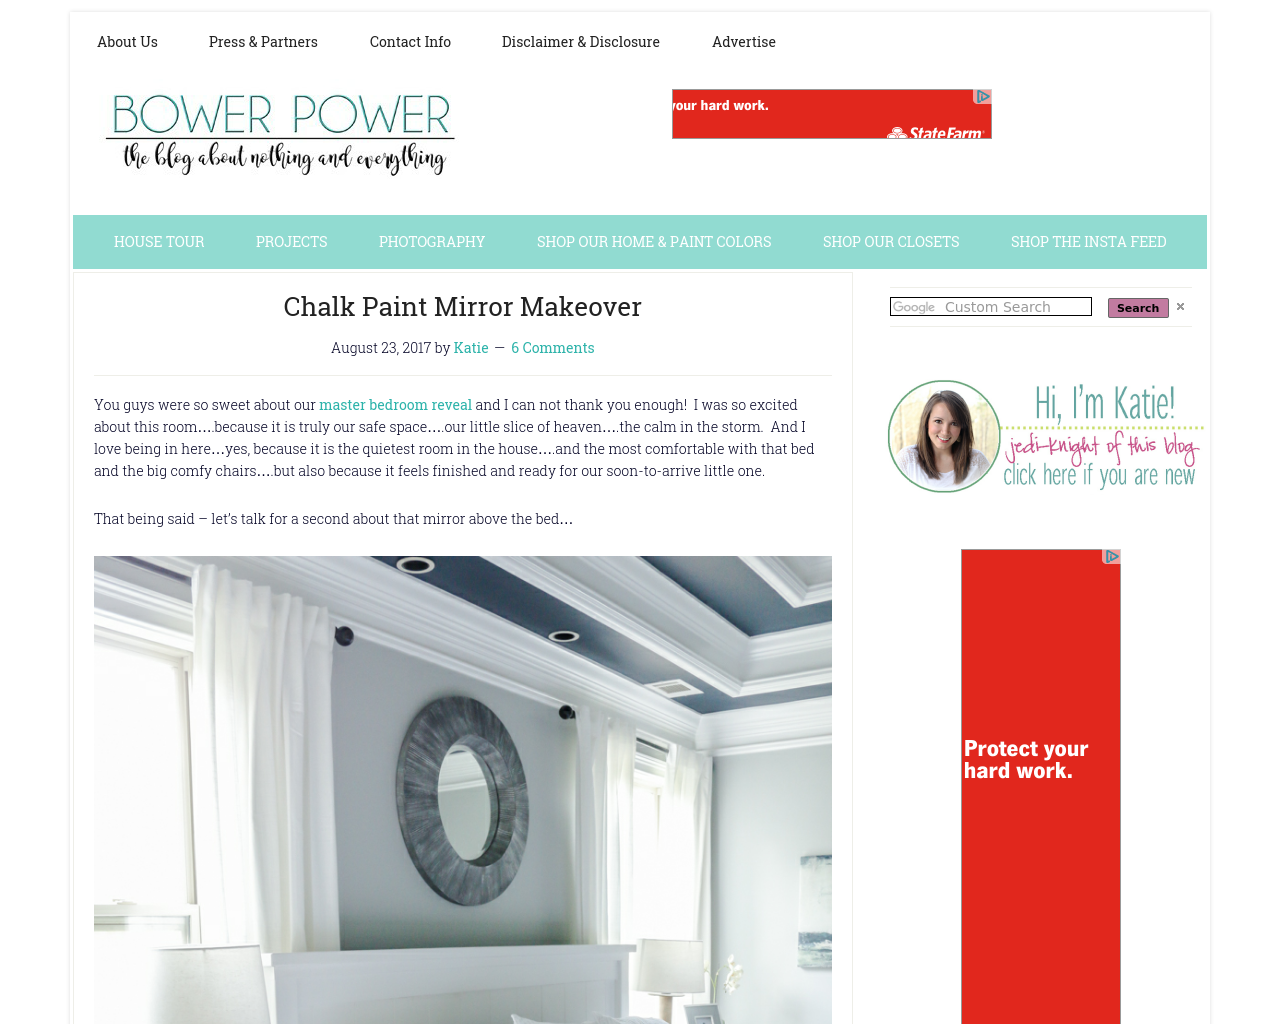 Bower-Power-Advertising-Reviews-Pricing